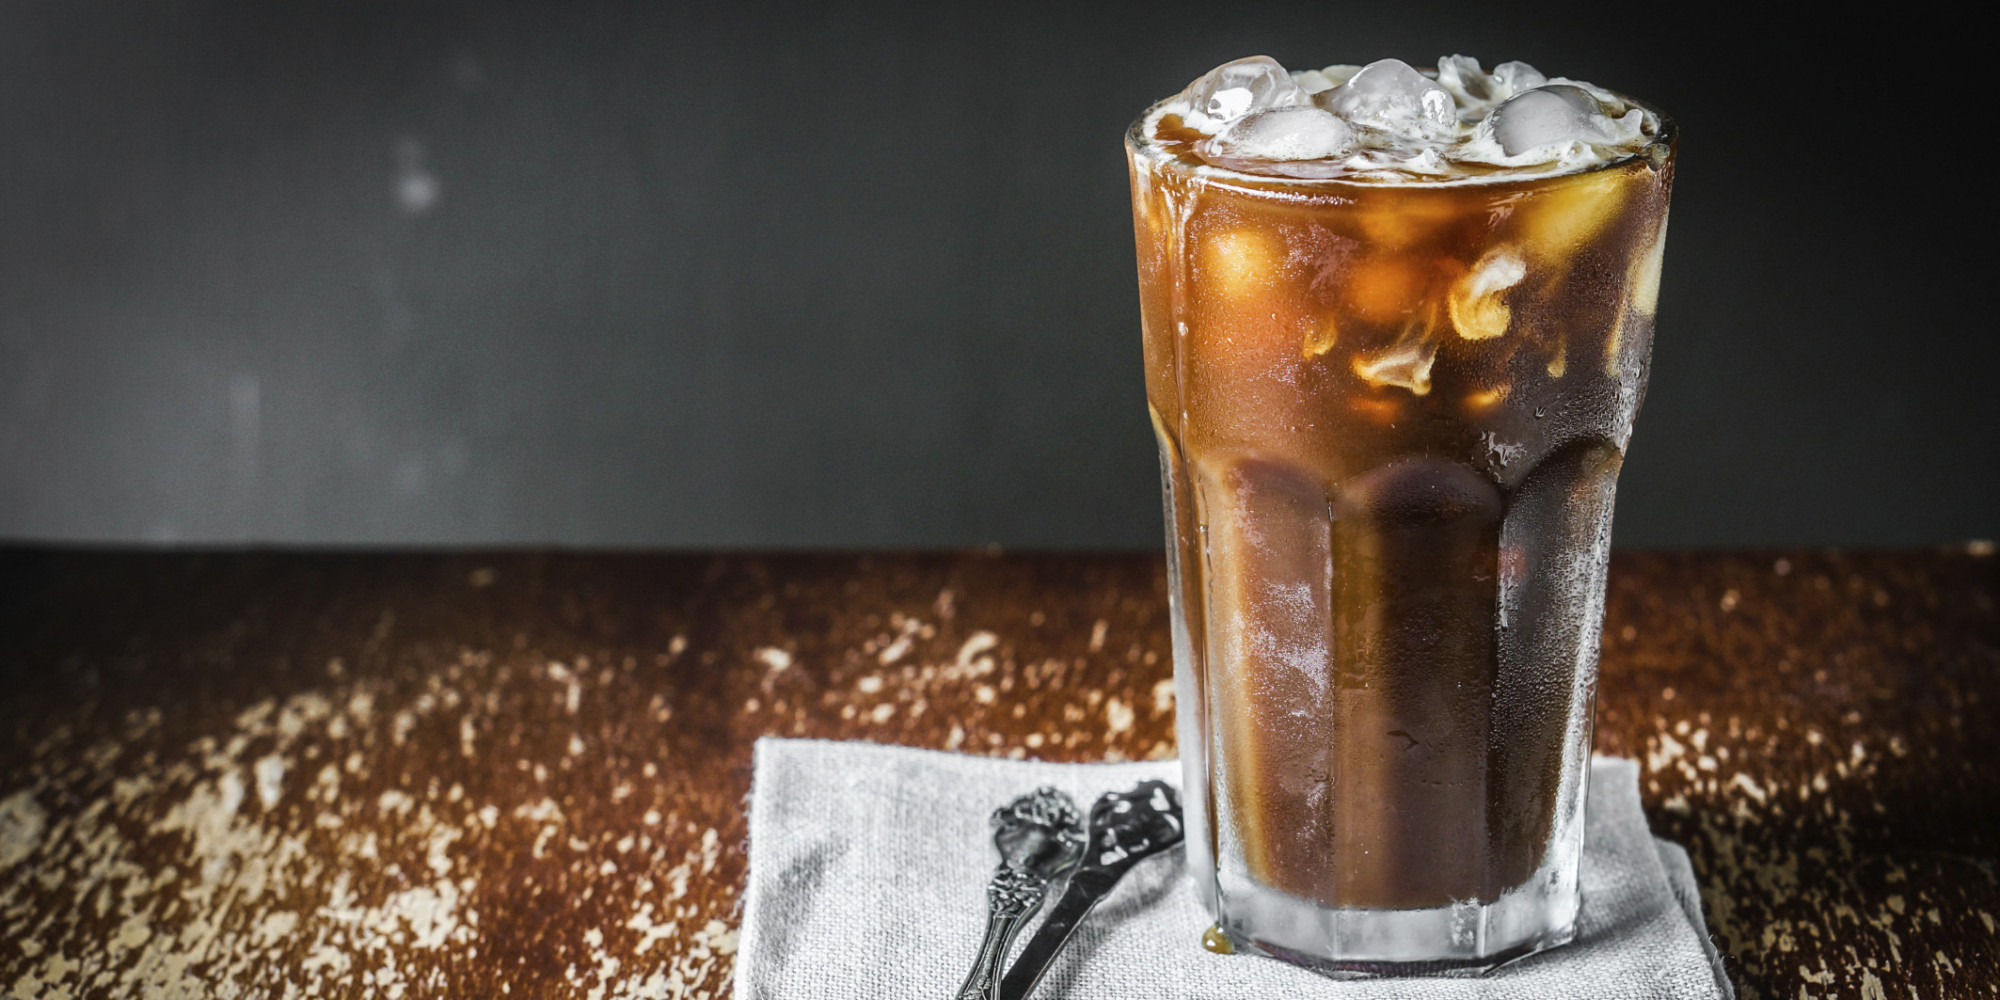 Best Iced Coffee To Make At Home